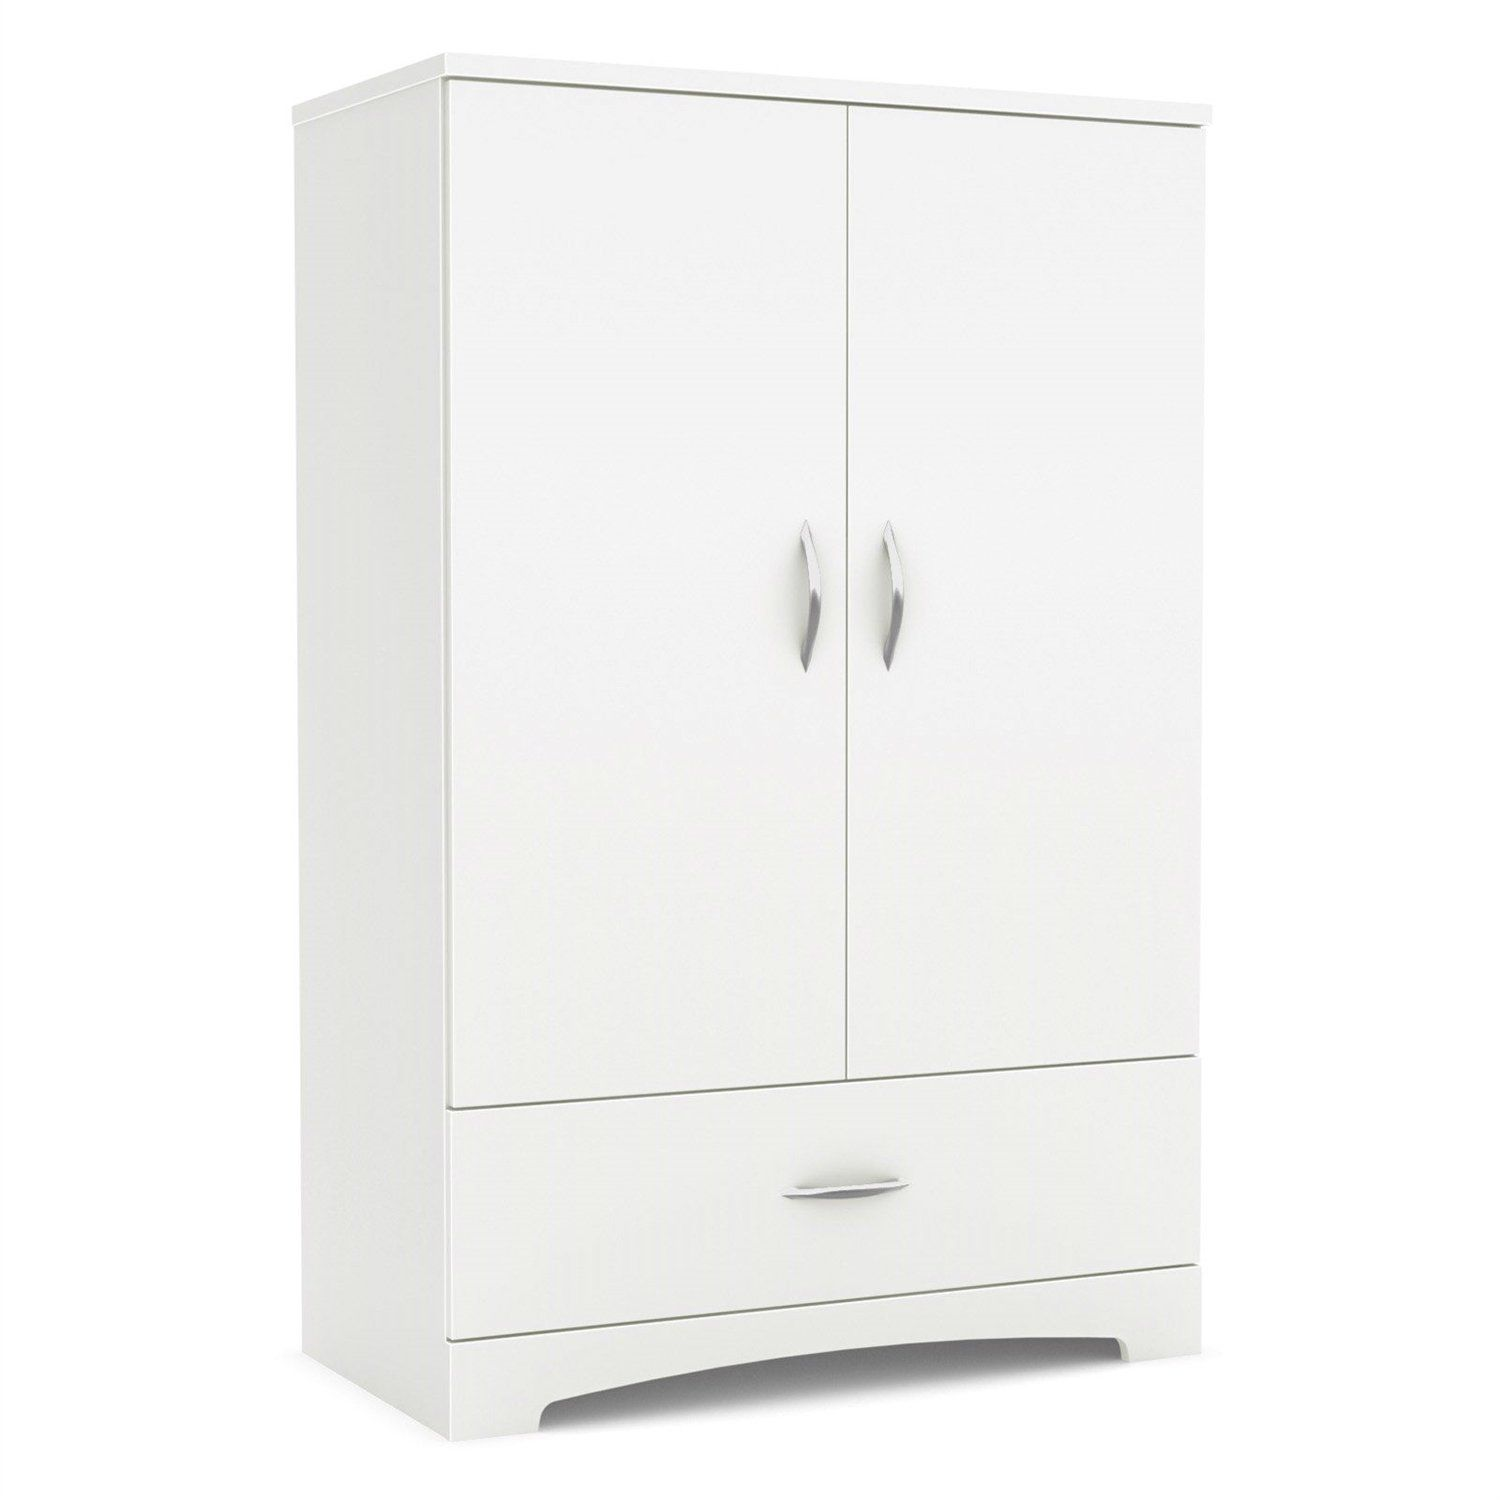 2 Door Armoire Wardrobe Cabinet With Bottom Storage Drawer In White Wood  Finish